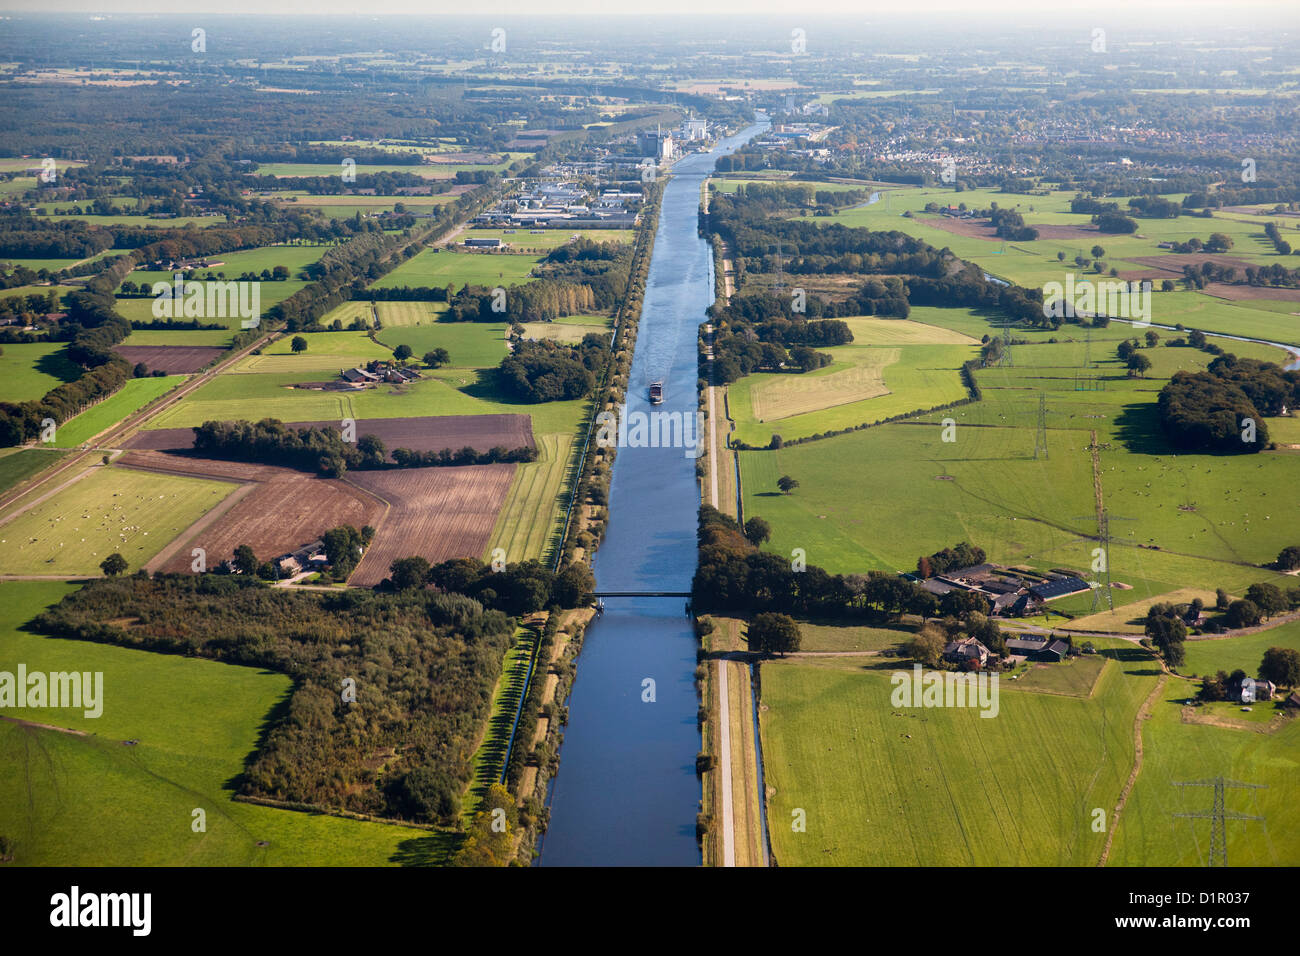 The Netherlands, Goor, Farms and fields. Agriculture. Aerial - Stock Image